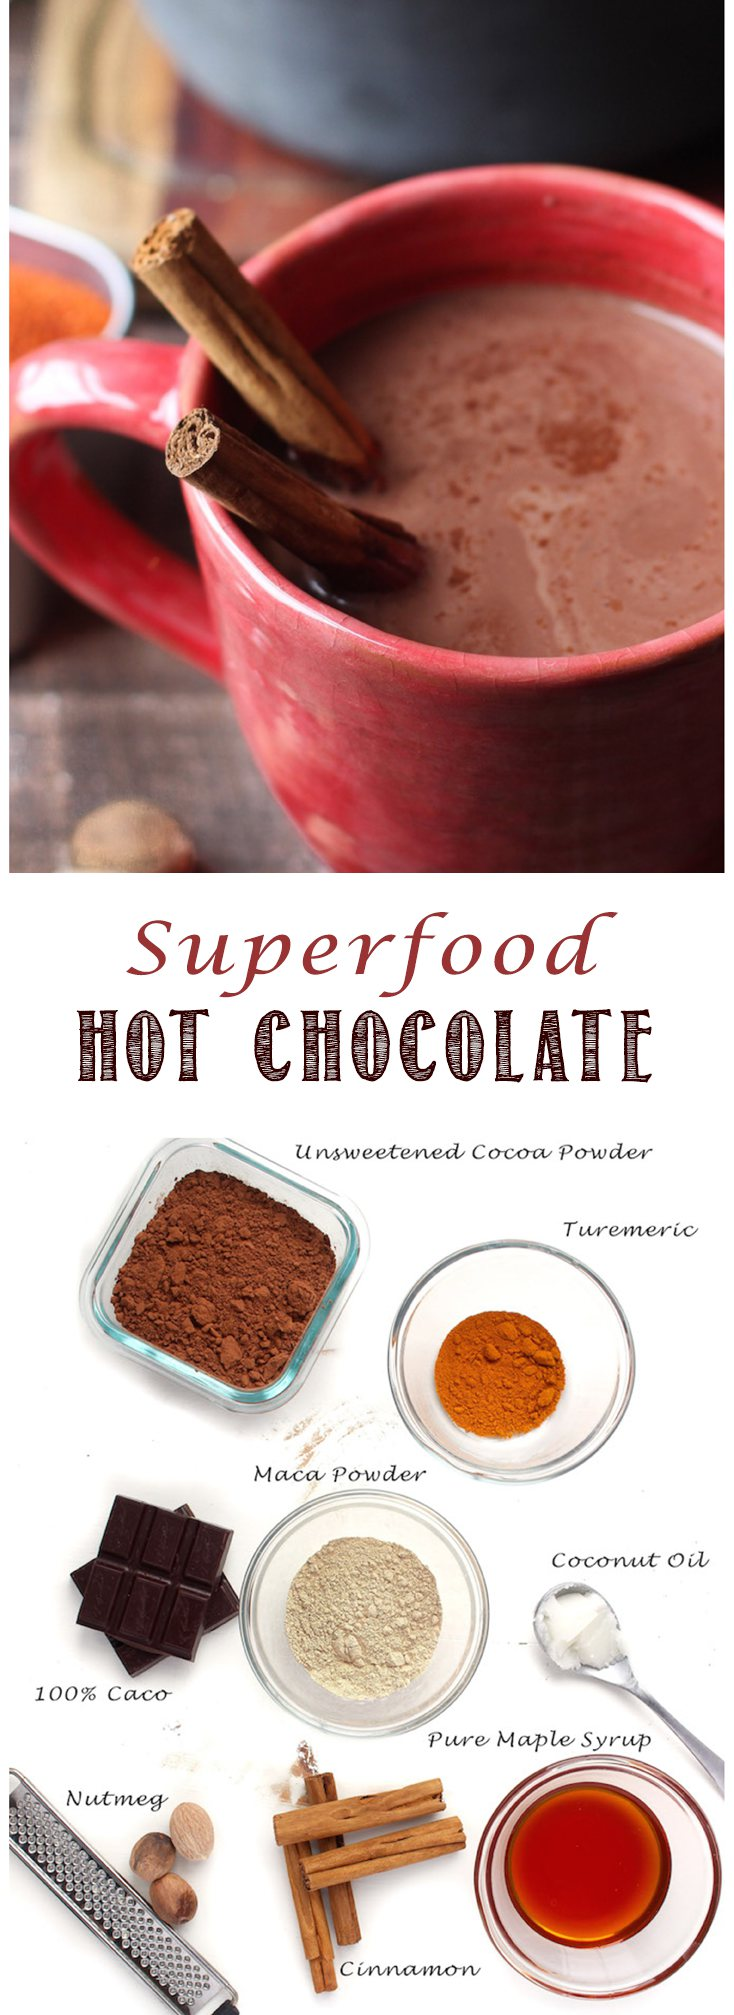 Superfood Hot Chocolate